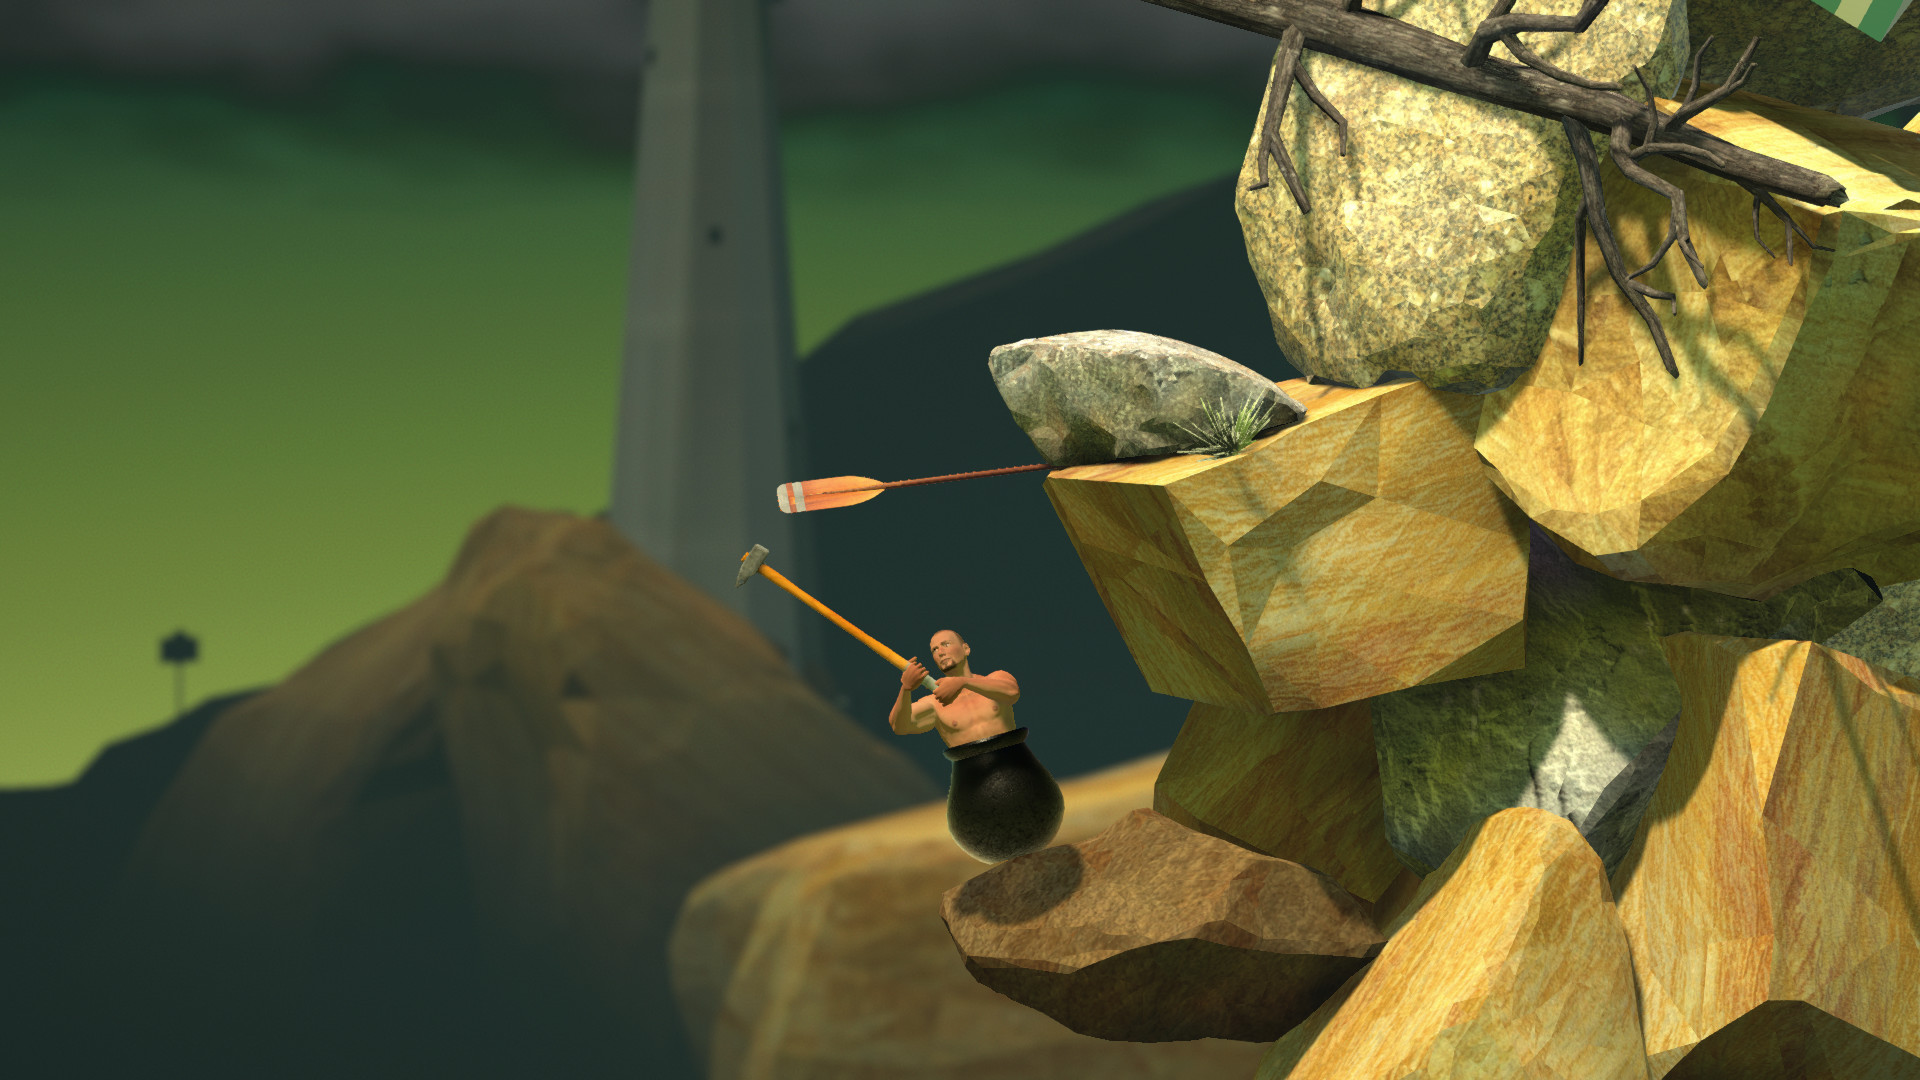 Getting Over It with Bennett Foddy is out on Steam